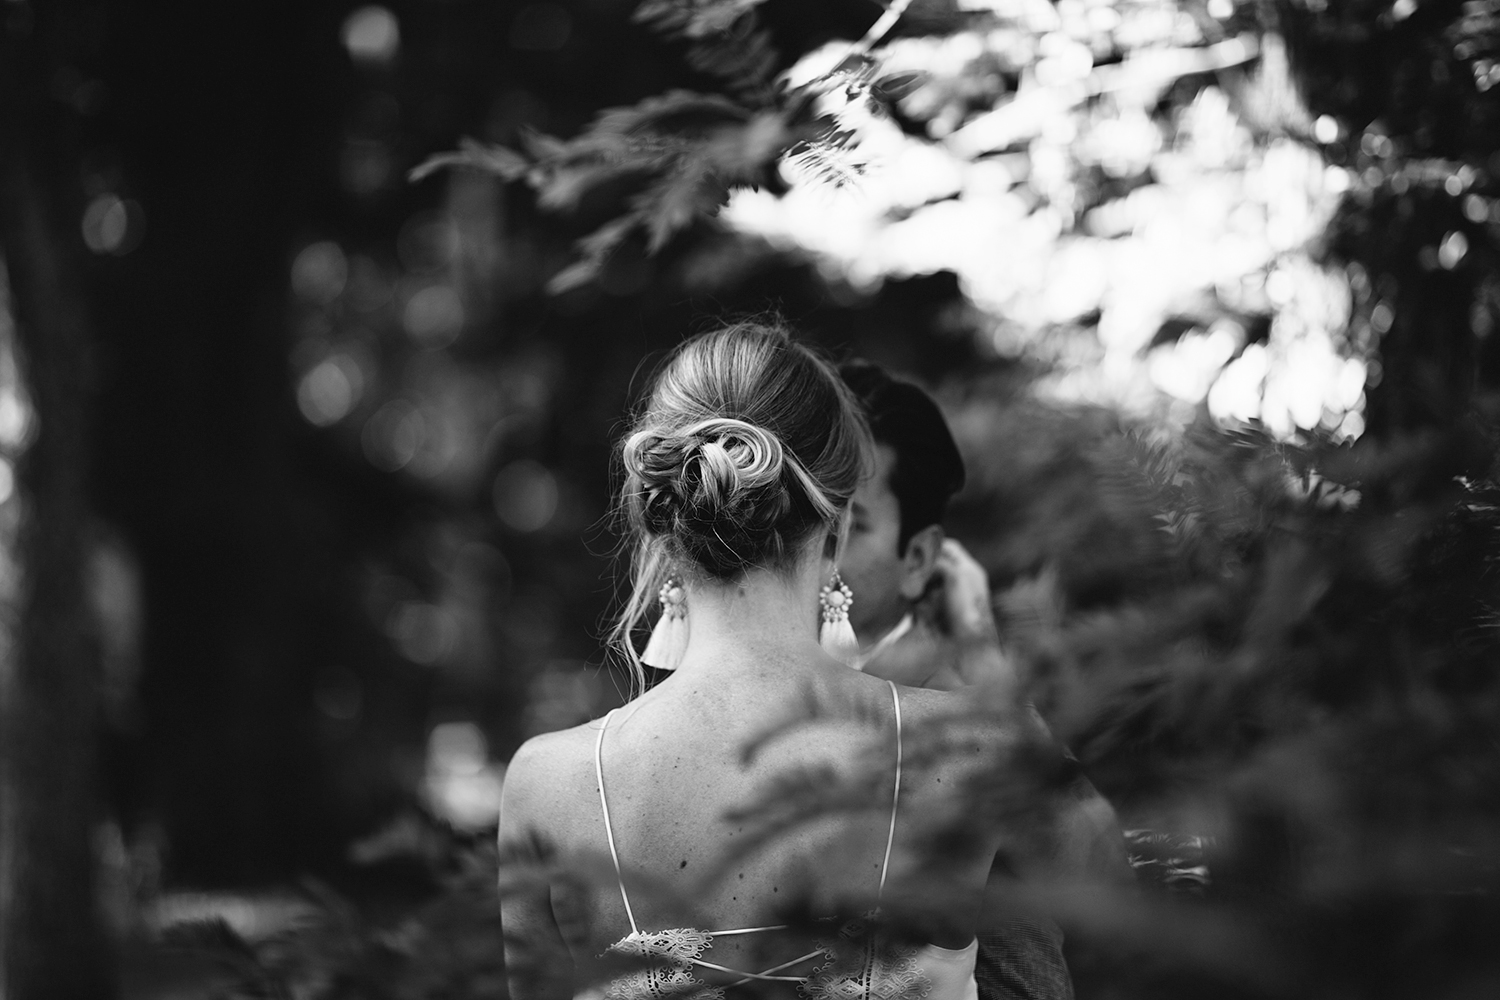 Best-Film-Wedding-Photographers-Toronto-Kodak-Trix-35mm-Analog-Wedding-Photography-Ontario-Canada-Small-town-coutry-wedding-couple-candid-portraits-intimate-documentary-fine-art-aesthetic-lifestyle-bridal-updo-details-hair-style.jpg